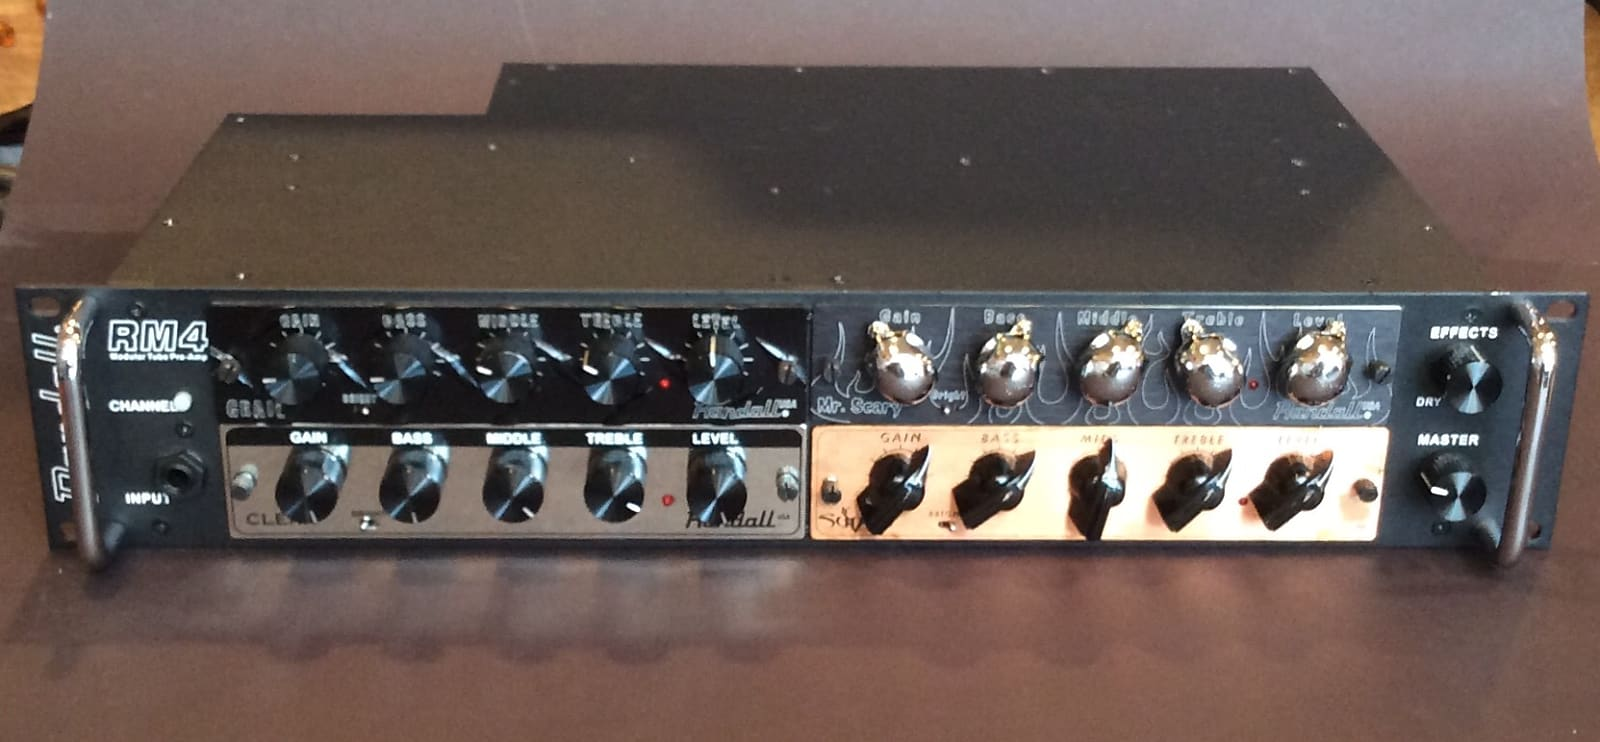 Randall RM4 Tube Pre-Amp Rackmount Chassis w/ 4 NOS Modules Included